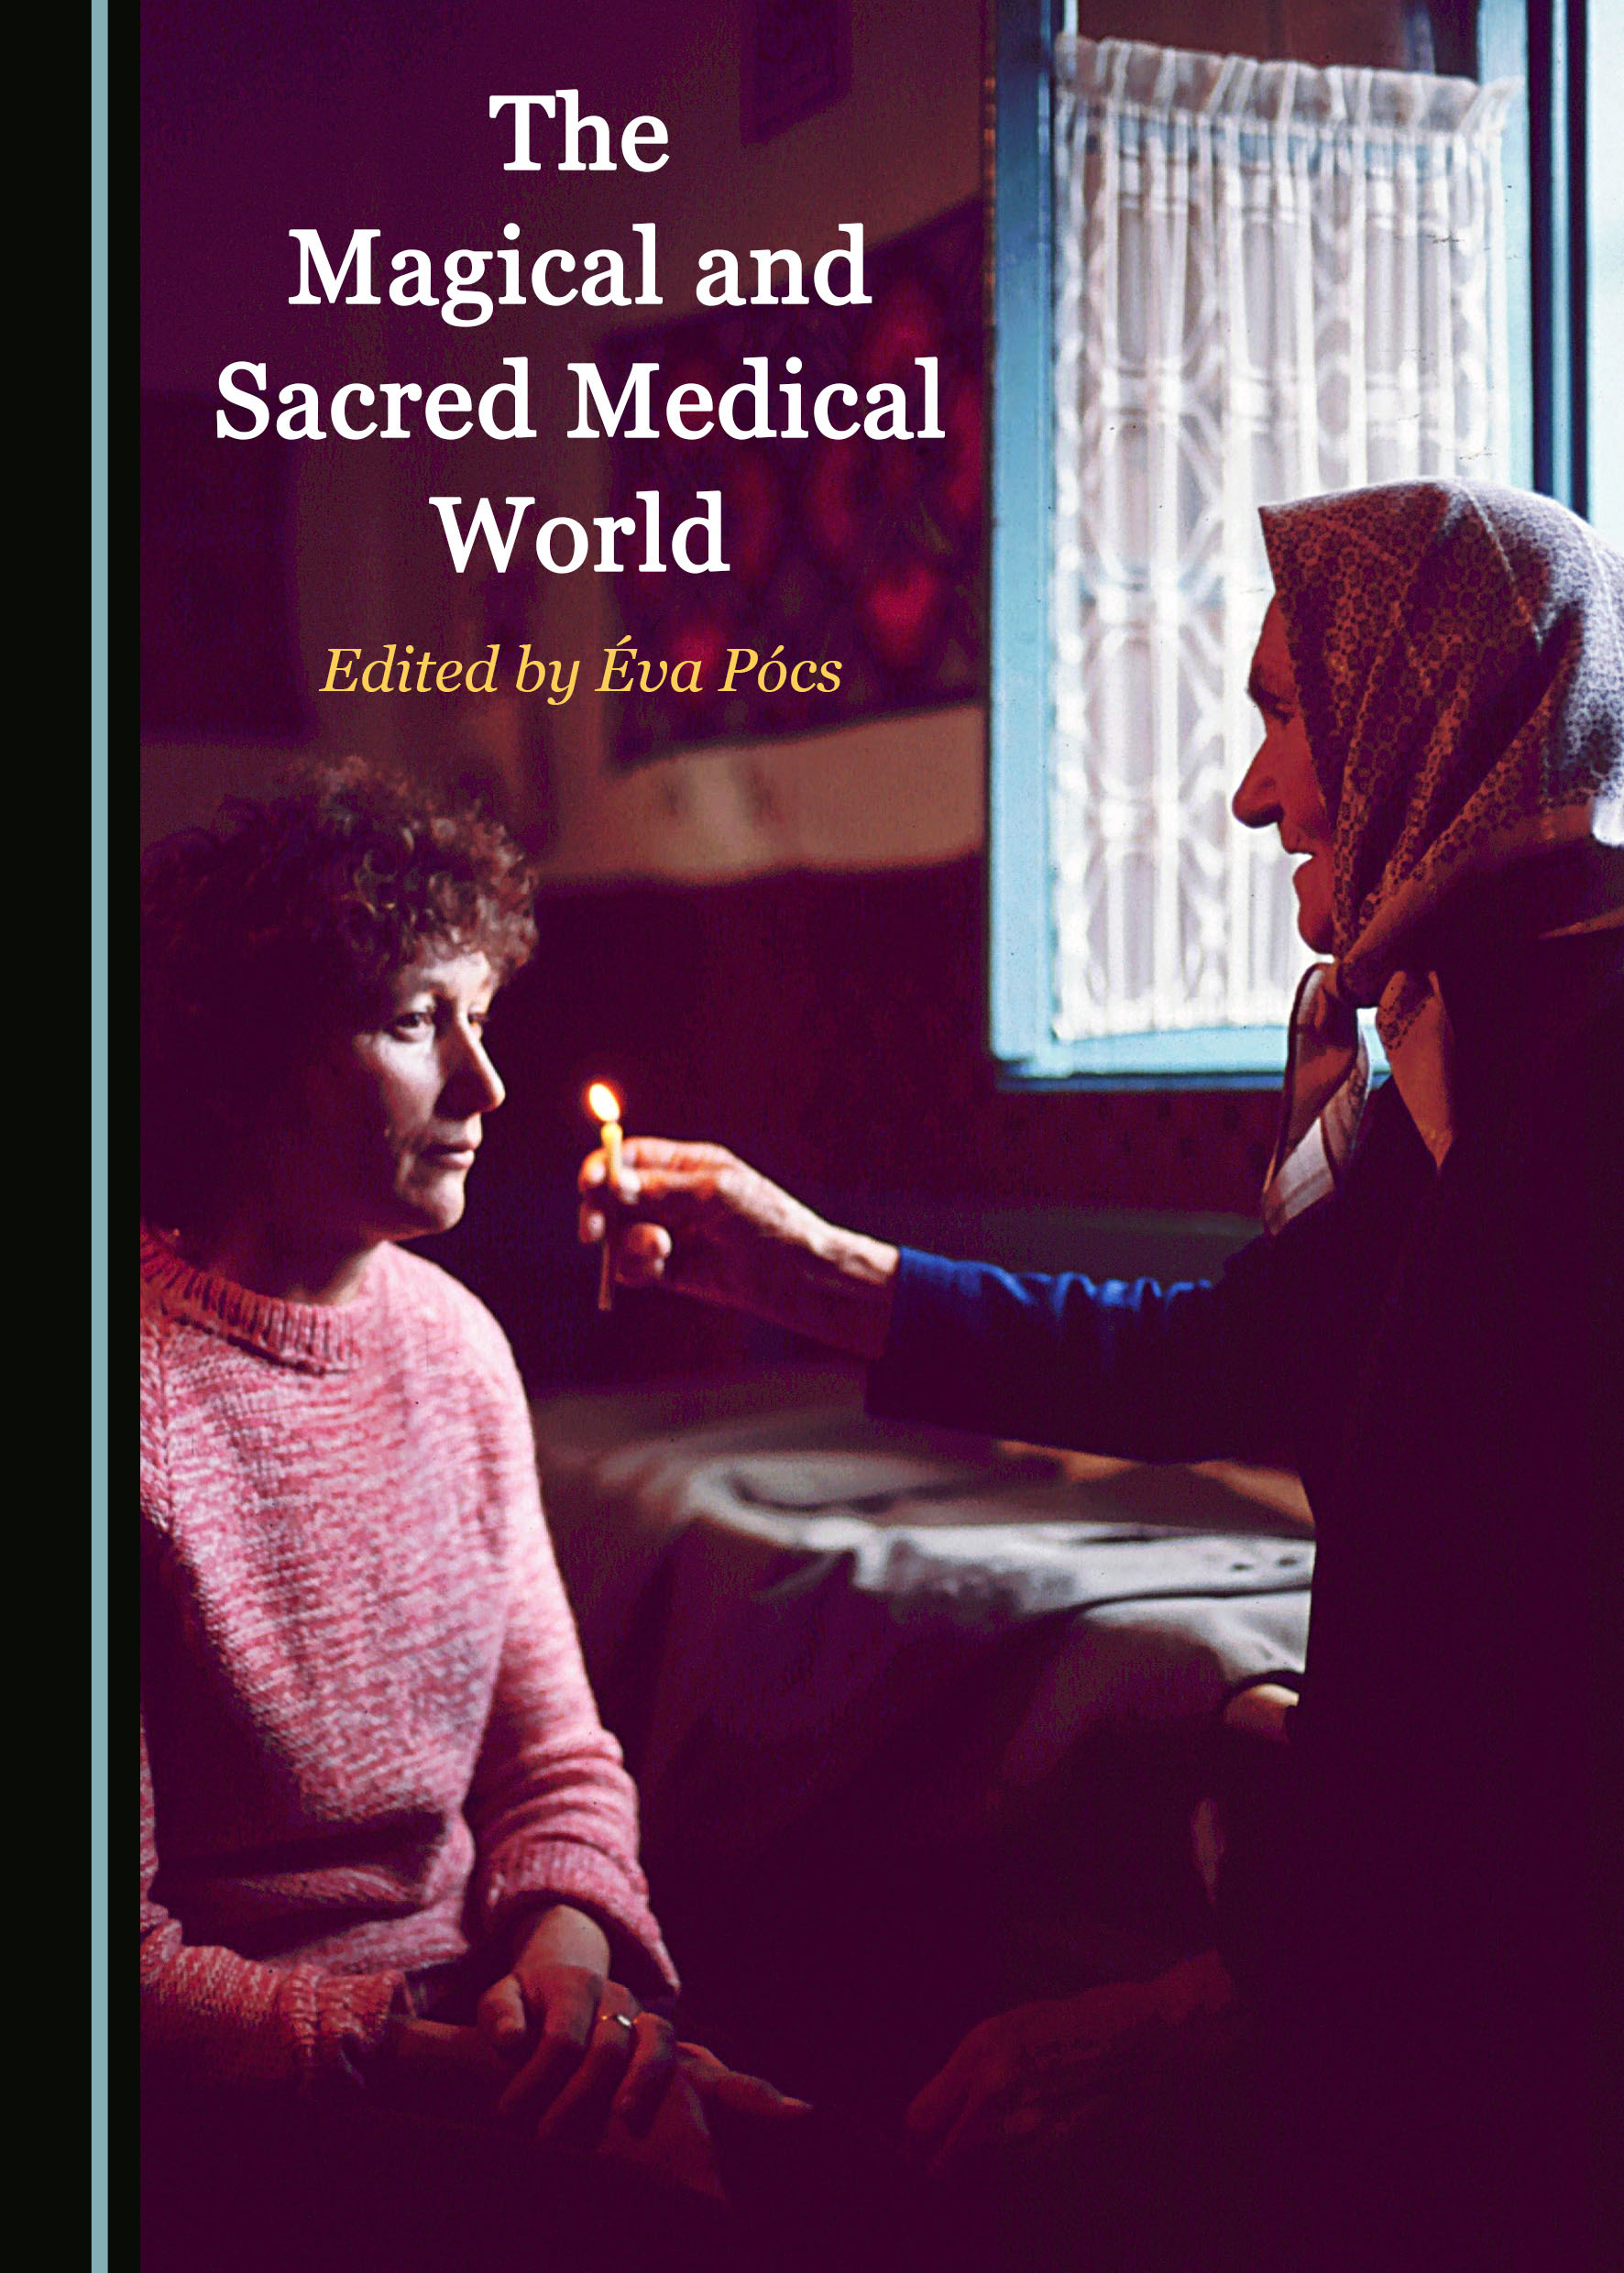 The Magical and Sacred Medical World